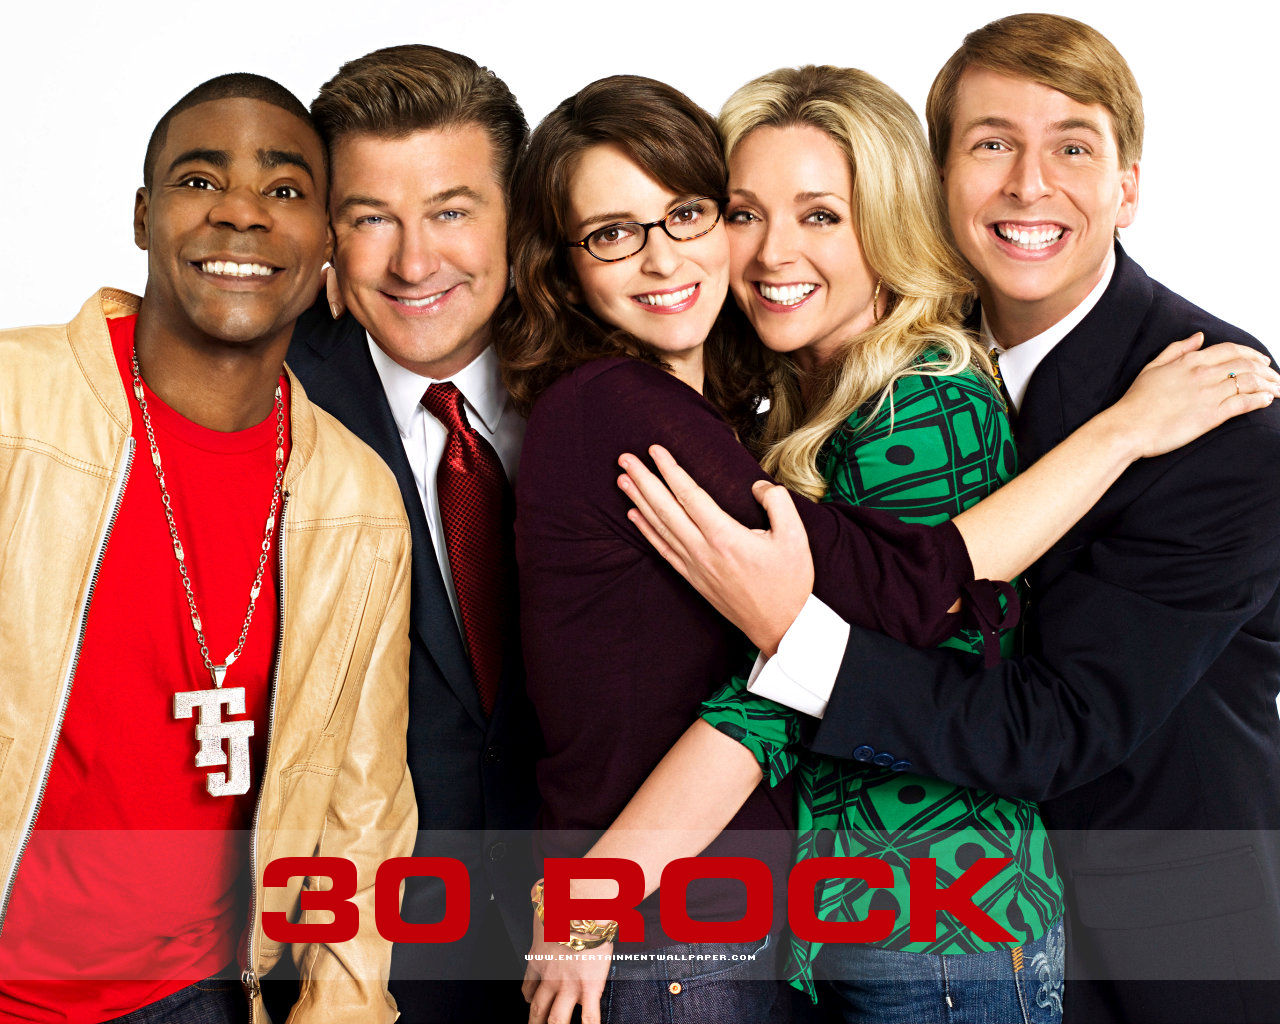 """30 Rock"" Comes To An End After 7 Seasons"